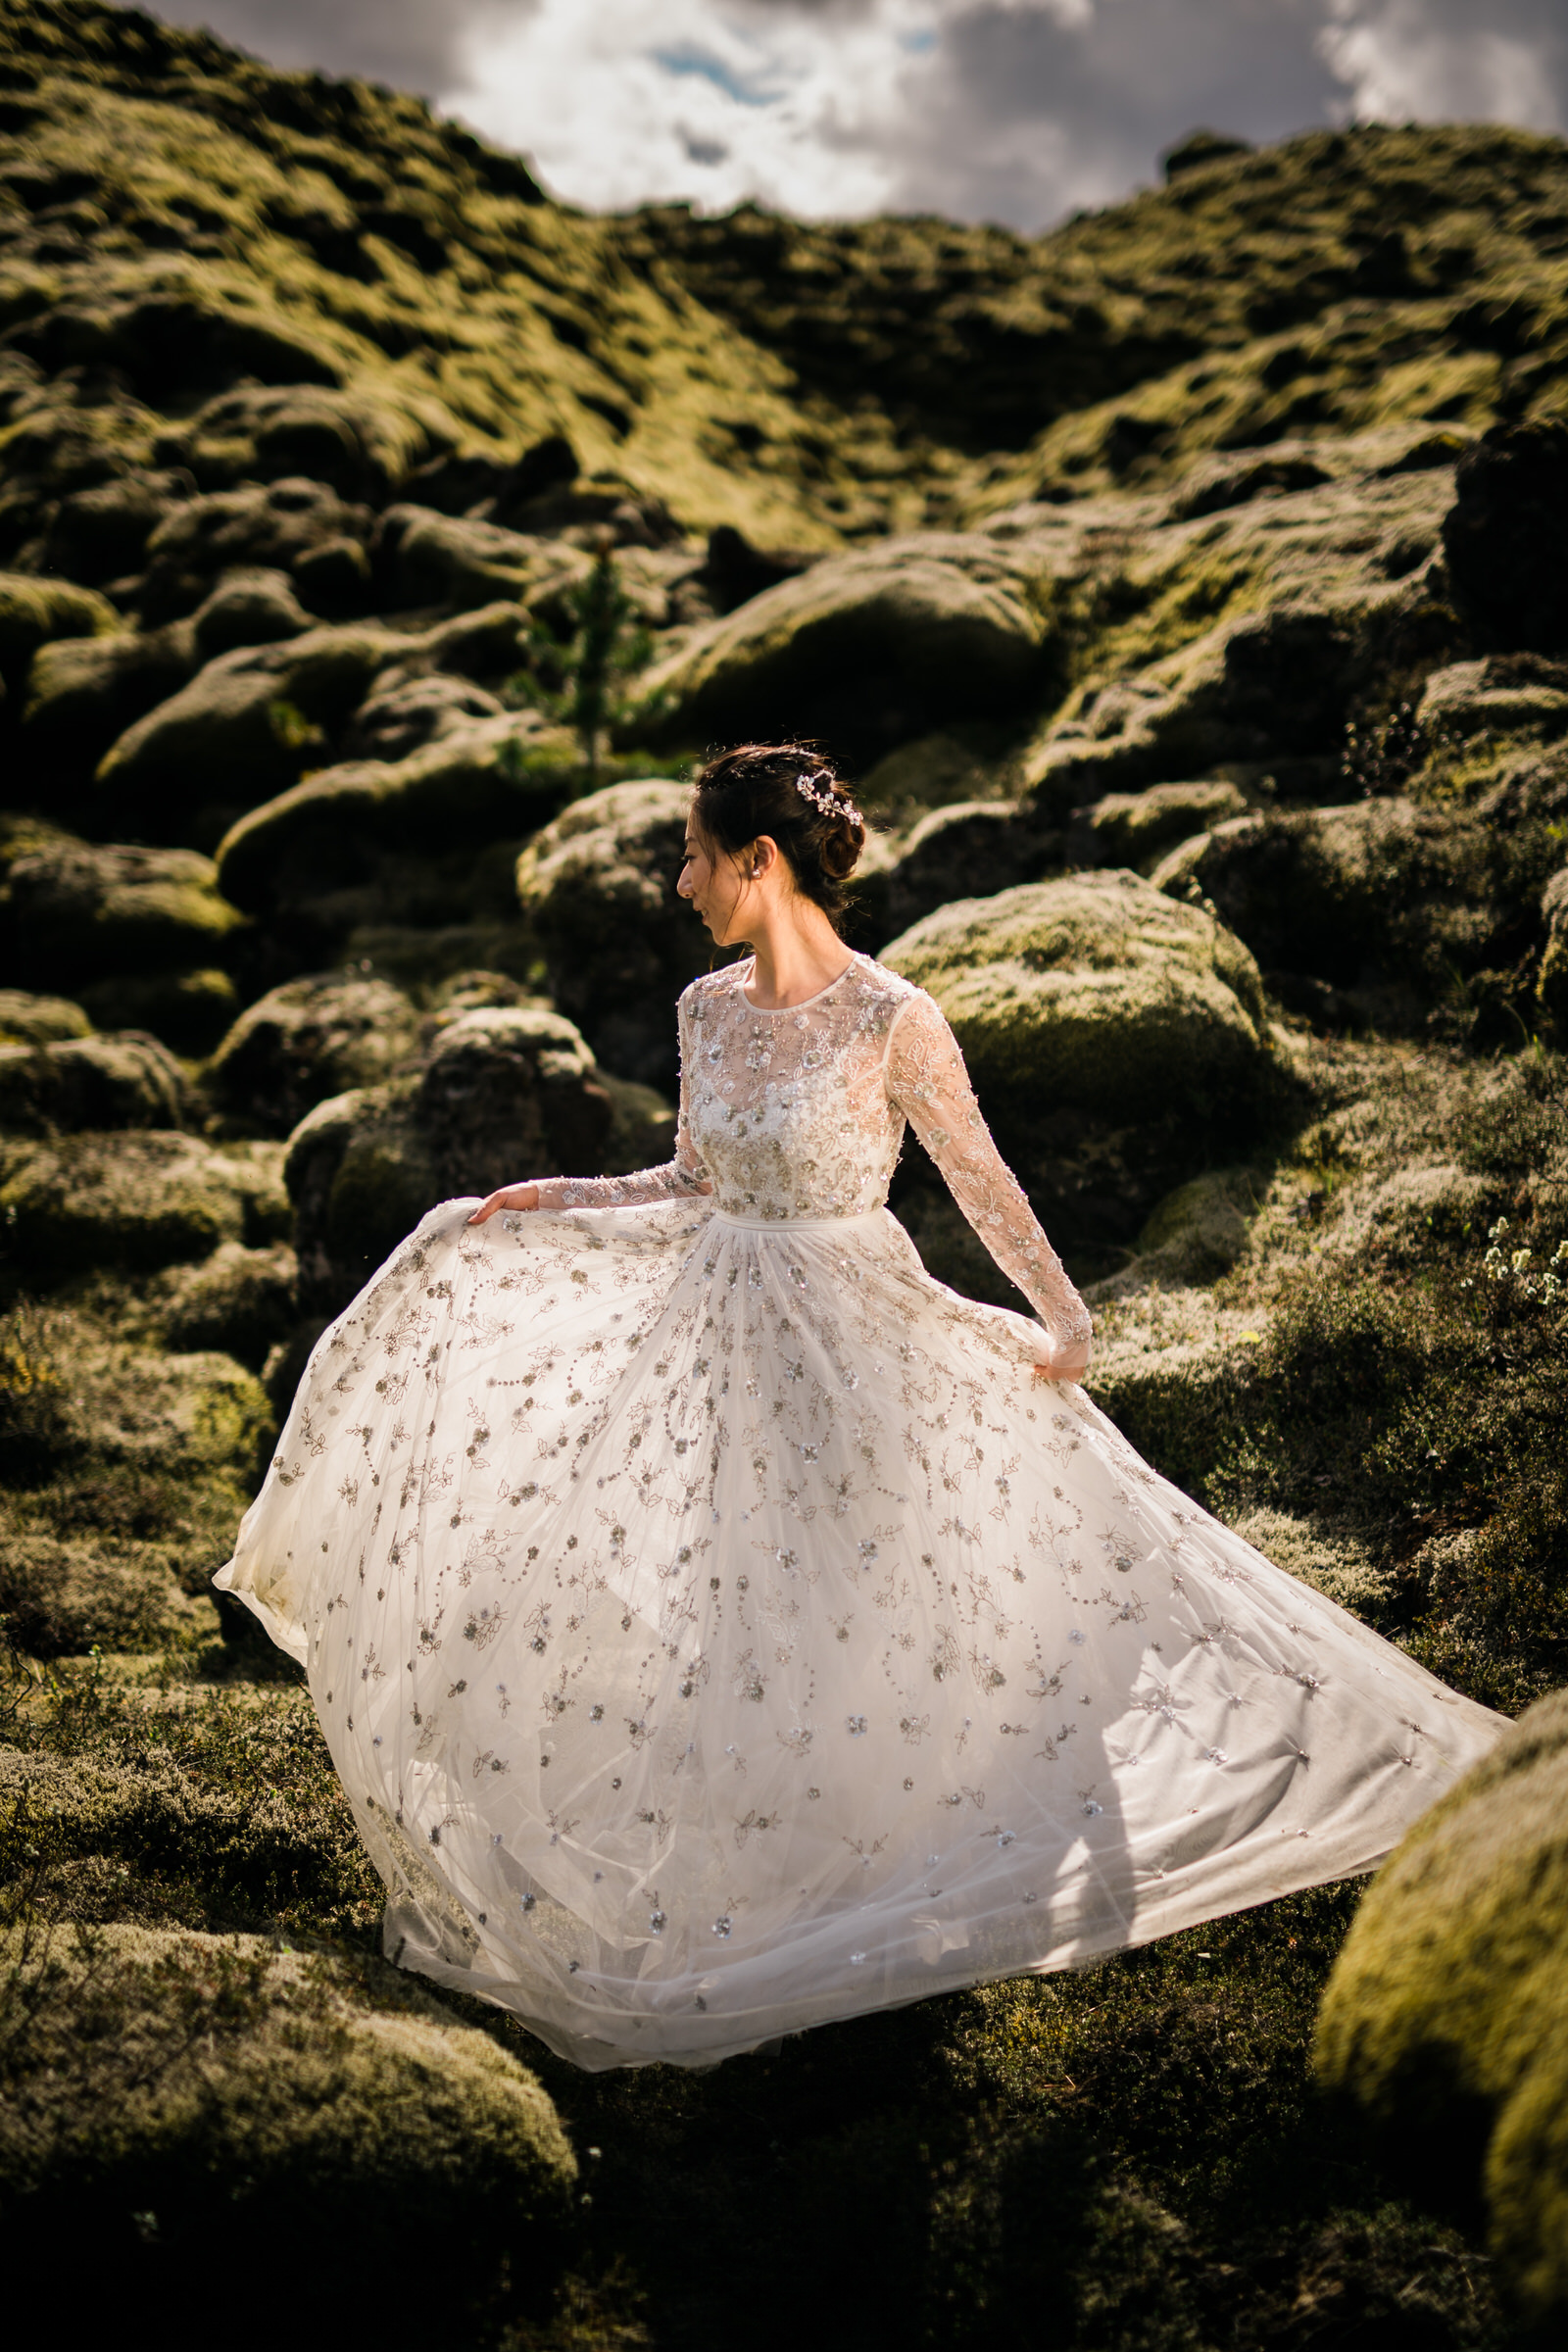 Bride shows off elopement gown in Iceland landscape - photo by M&J Studios